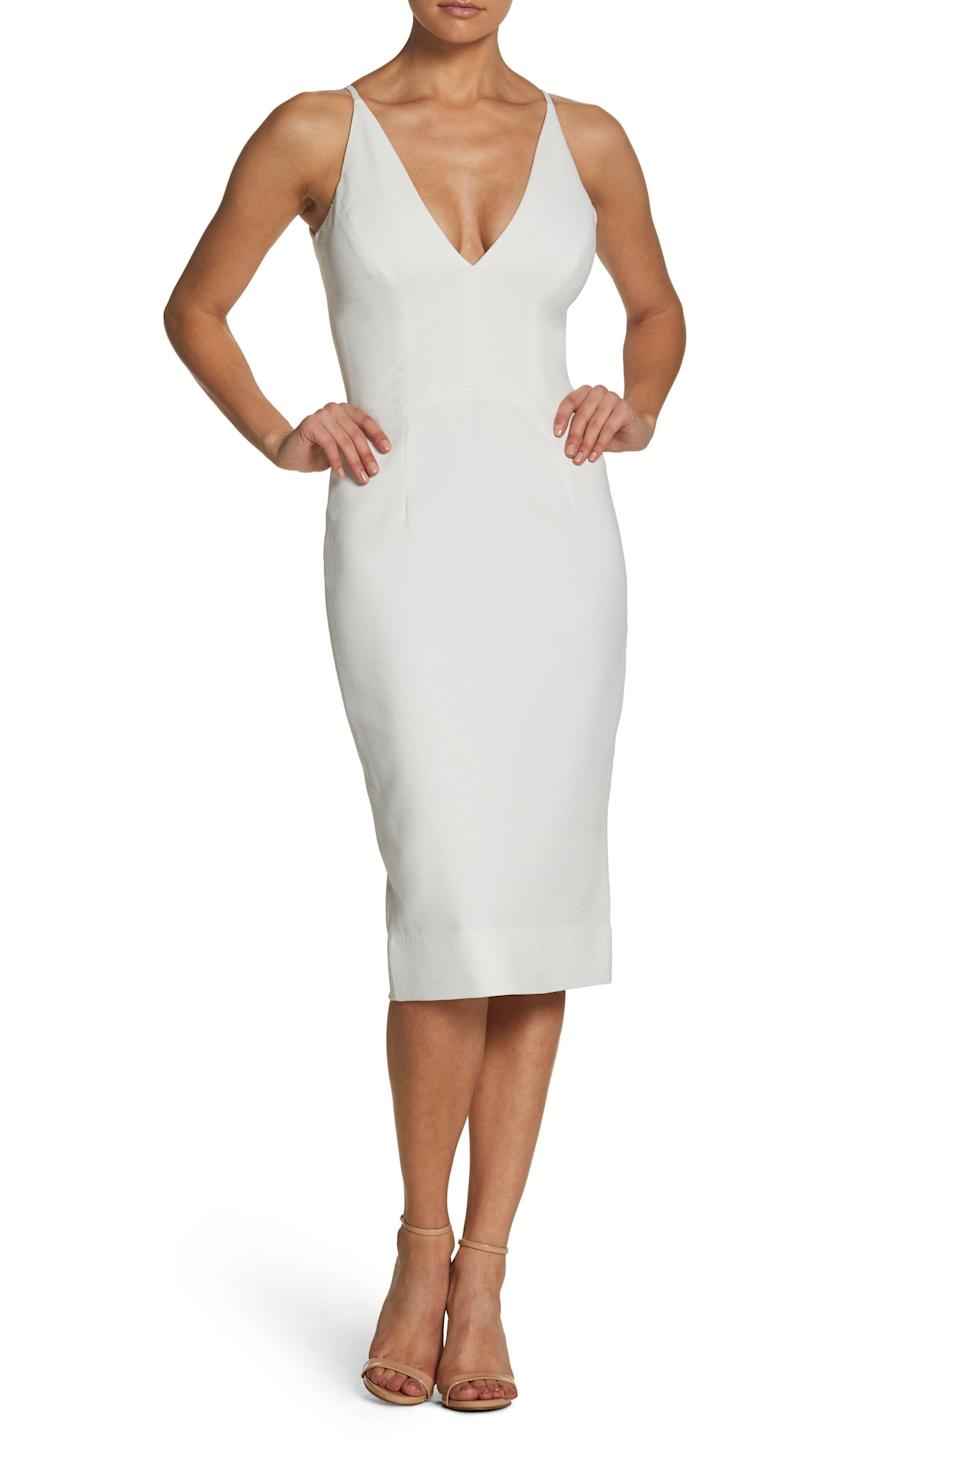 """<p><strong>DRESS THE POPULATION</strong></p><p>nordstrom.com</p><p><a href=""""https://go.redirectingat.com?id=74968X1596630&url=https%3A%2F%2Fwww.nordstrom.com%2Fs%2Fdress-the-population-lyla-crepe-cocktail-dress%2F5806010&sref=https%3A%2F%2Fwww.townandcountrymag.com%2Fstyle%2Ffashion-trends%2Fg36557314%2Fnordstrom-half-yearly-sale-may-2021%2F"""" rel=""""nofollow noopener"""" target=""""_blank"""" data-ylk=""""slk:Shop Now"""" class=""""link rapid-noclick-resp"""">Shop Now</a></p><p>$99.98</p><p><em>Original Price: $168</em></p>"""